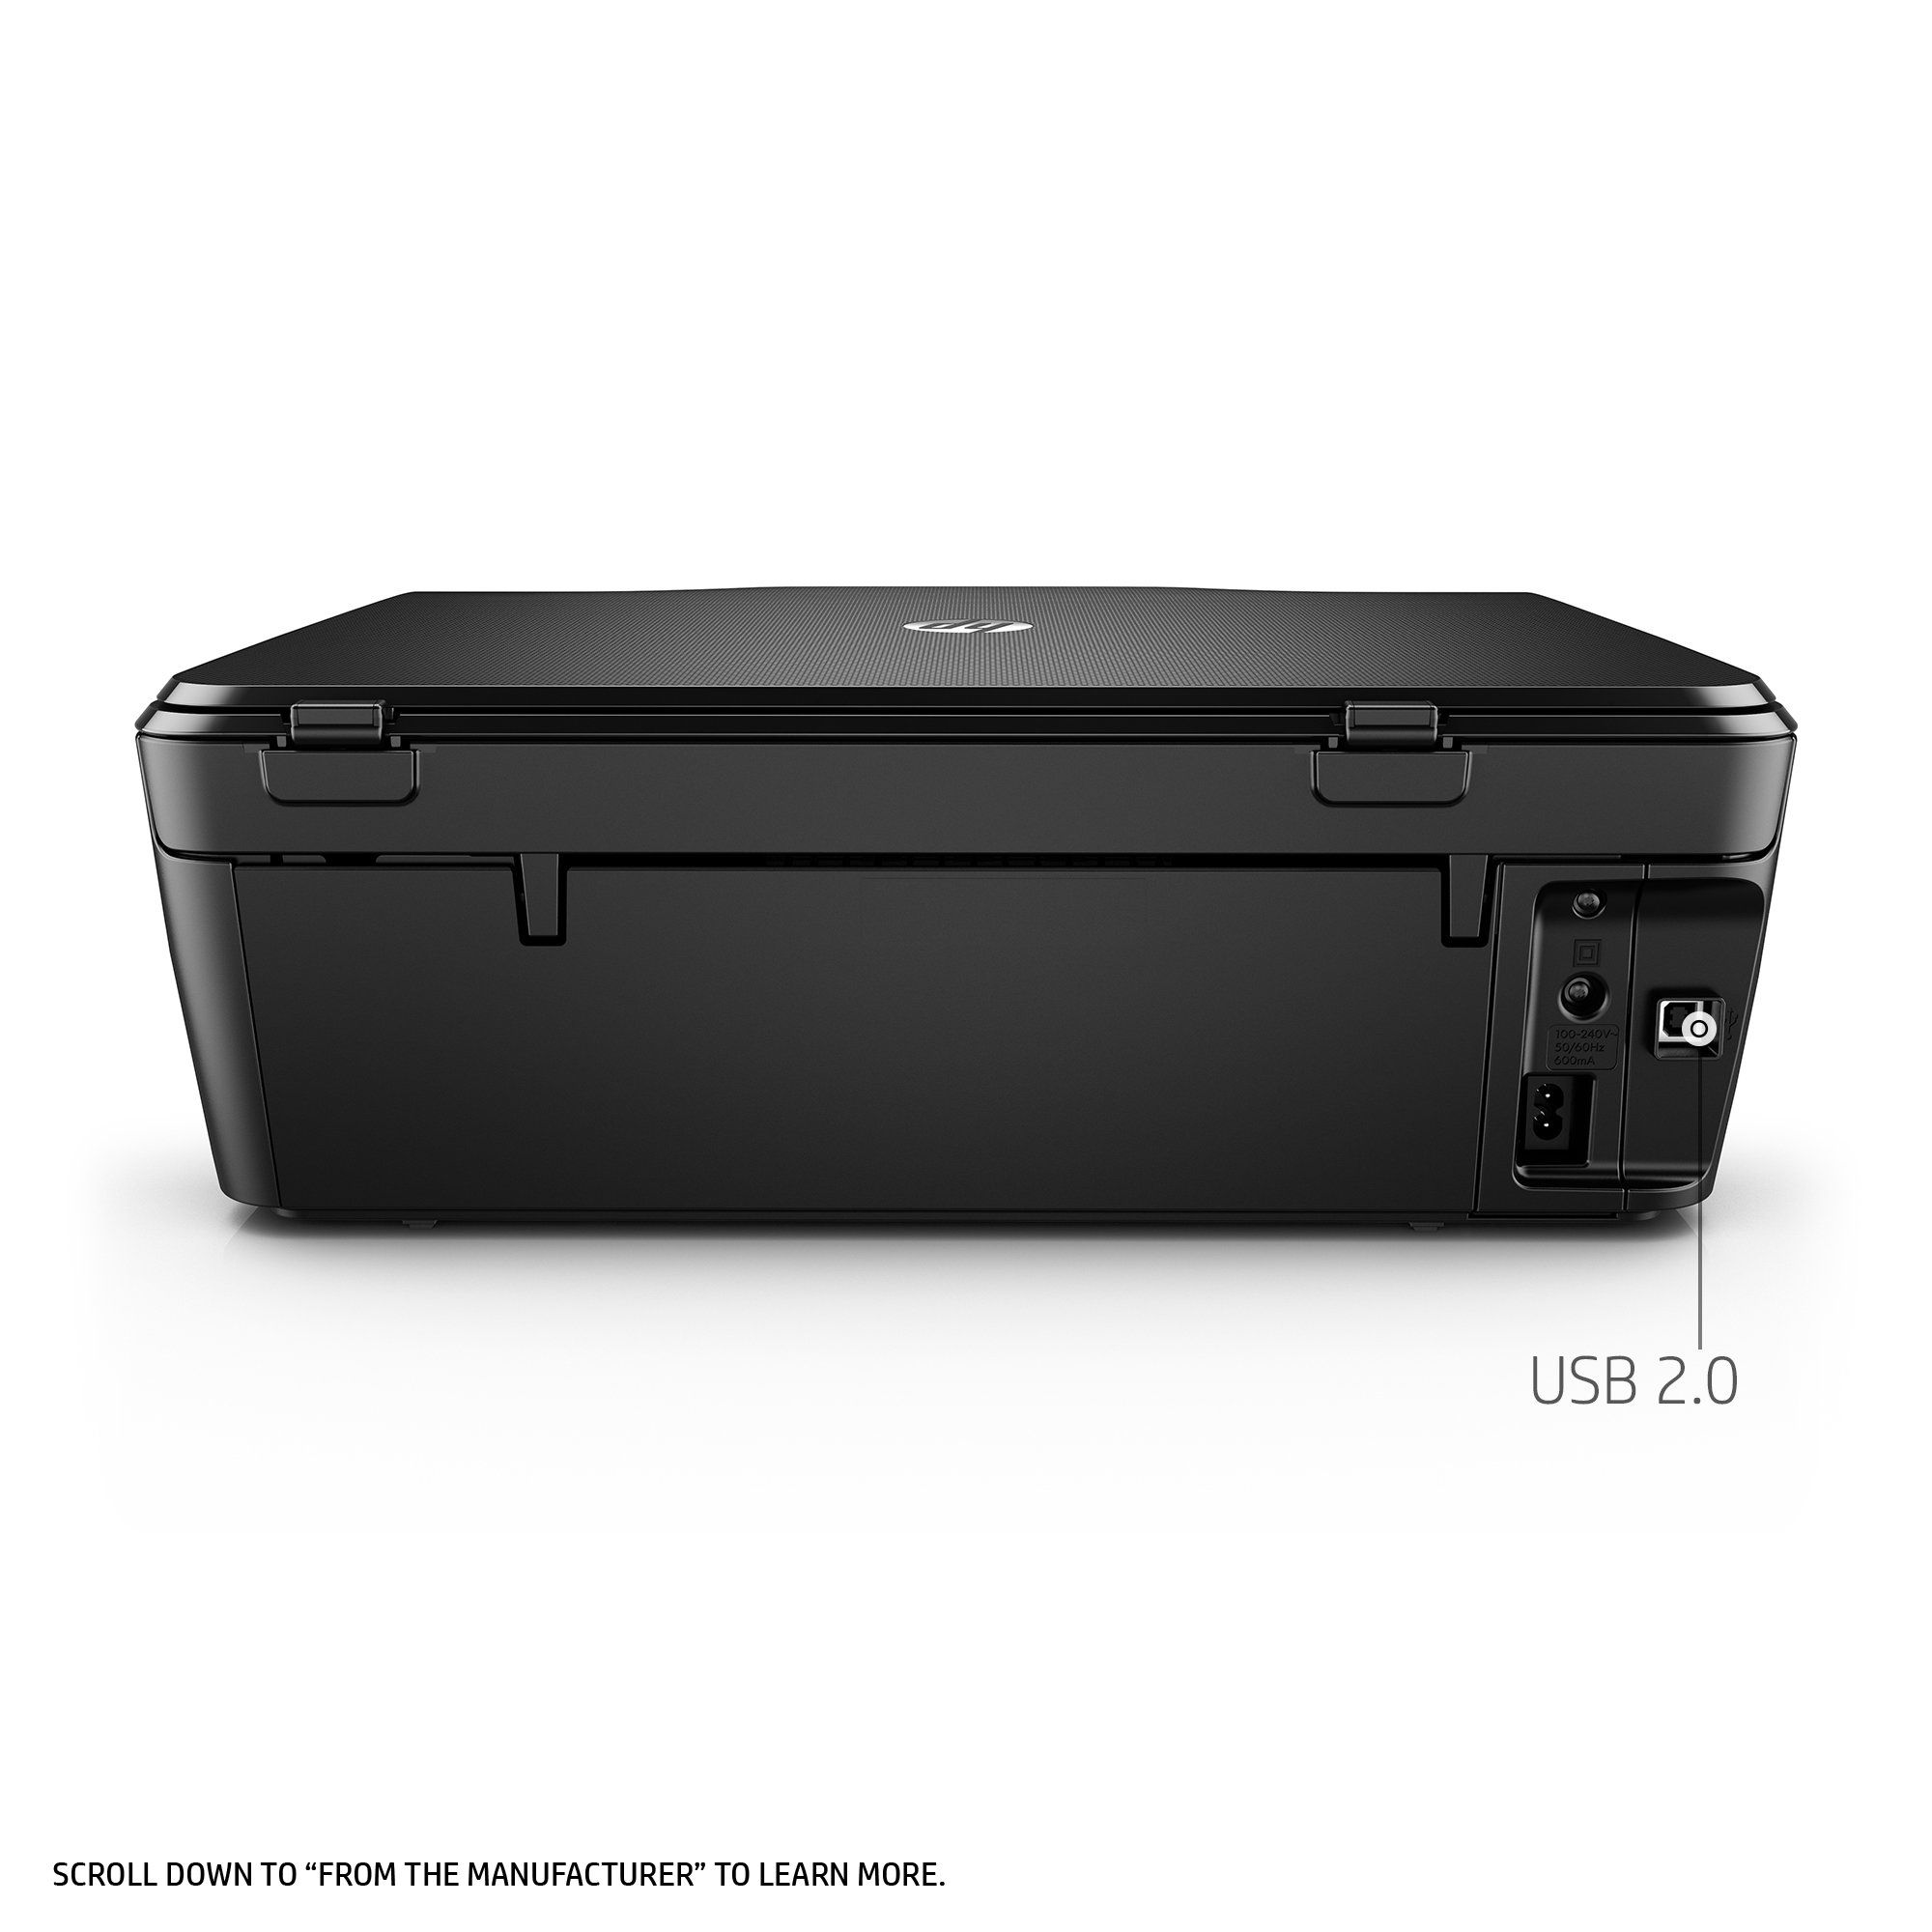 Hp Envy Photo 6255 All In One Photo Printer With Wireless Printing